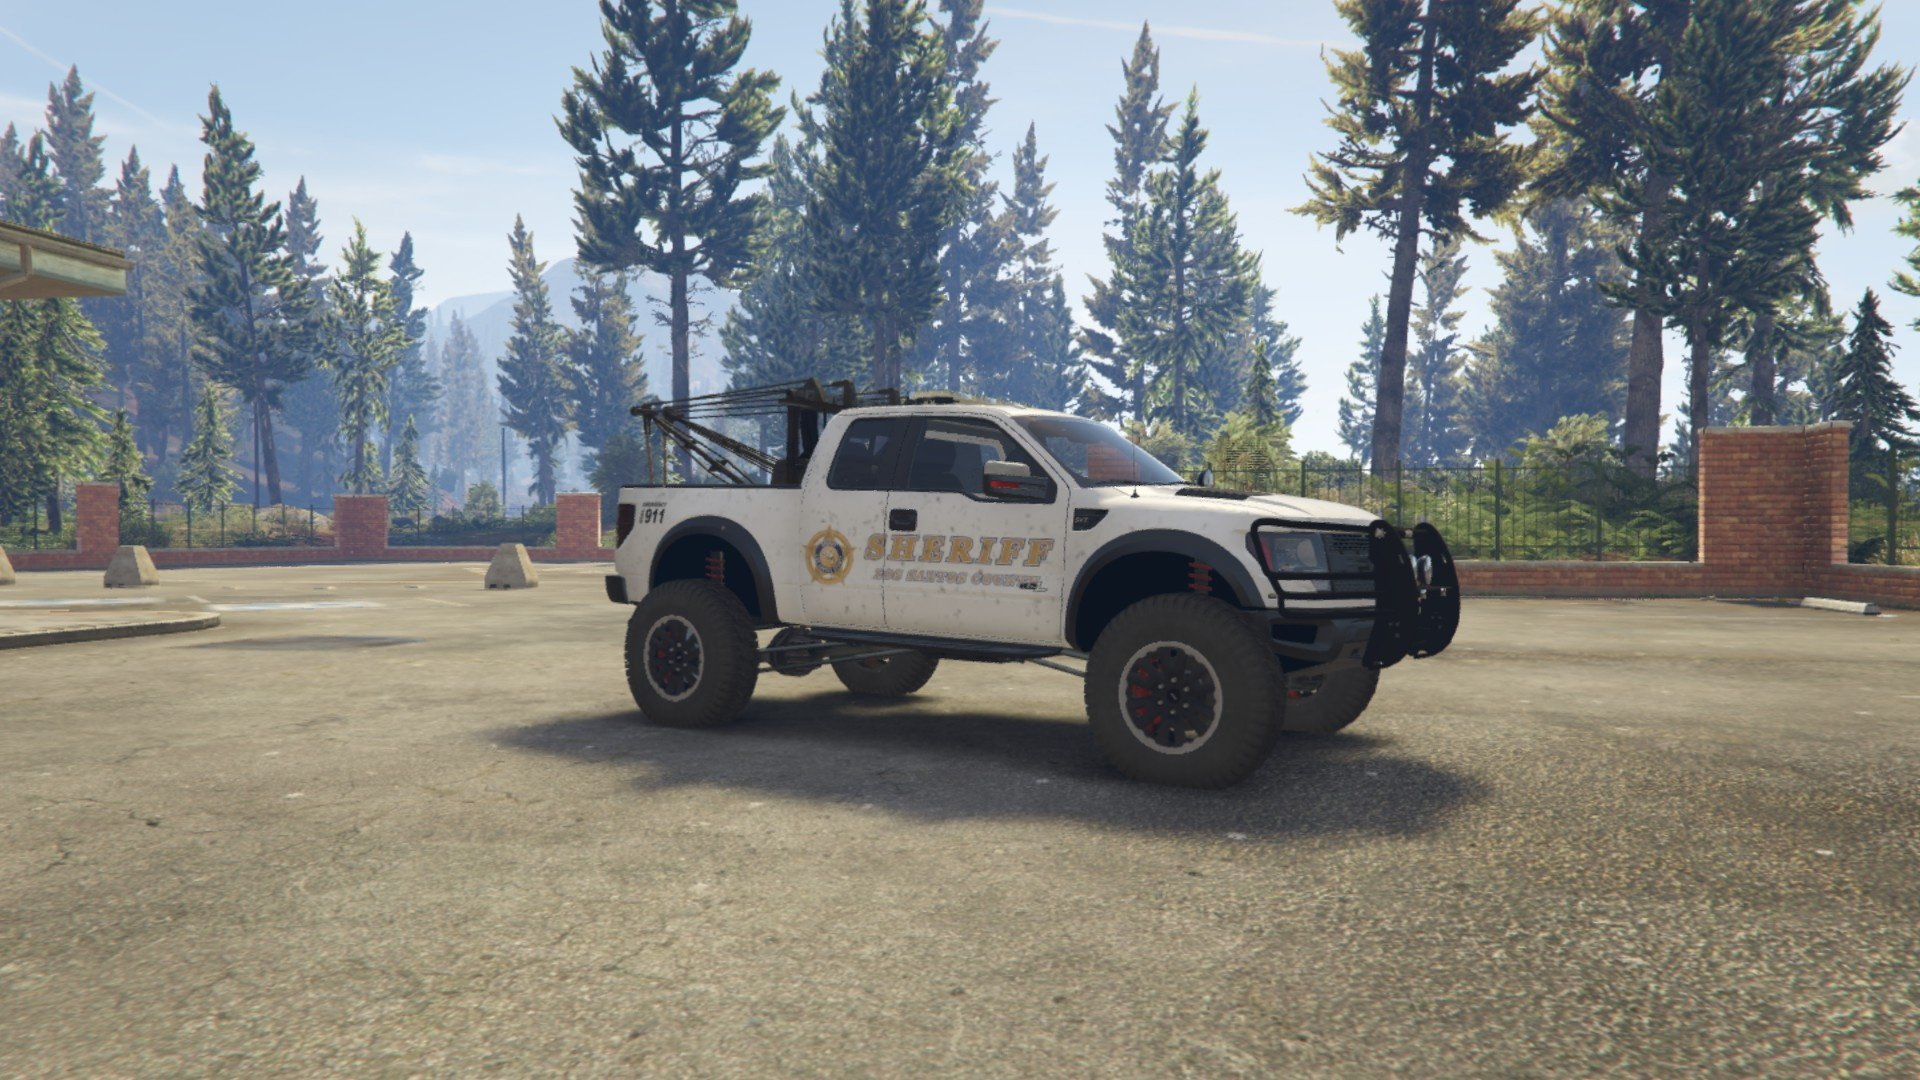 Police Raptor Lifted Towtruck ADD-ON version - GTA5-Mods.com